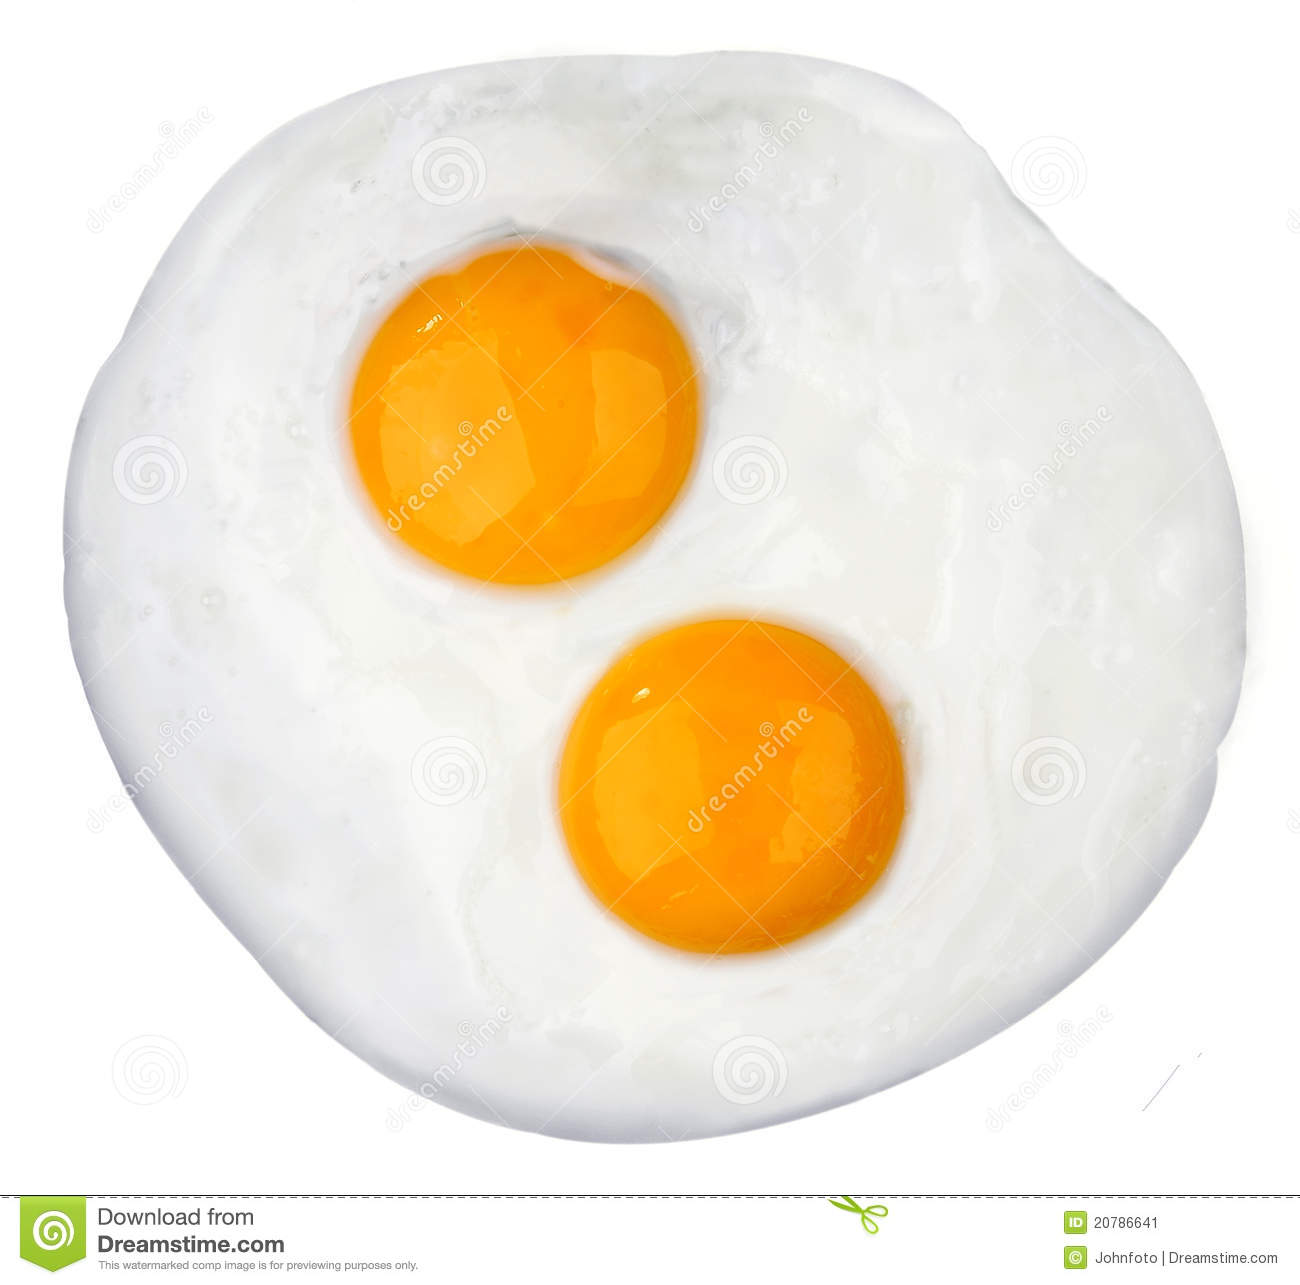 Fried Egg Stock Image - Image: 20786641